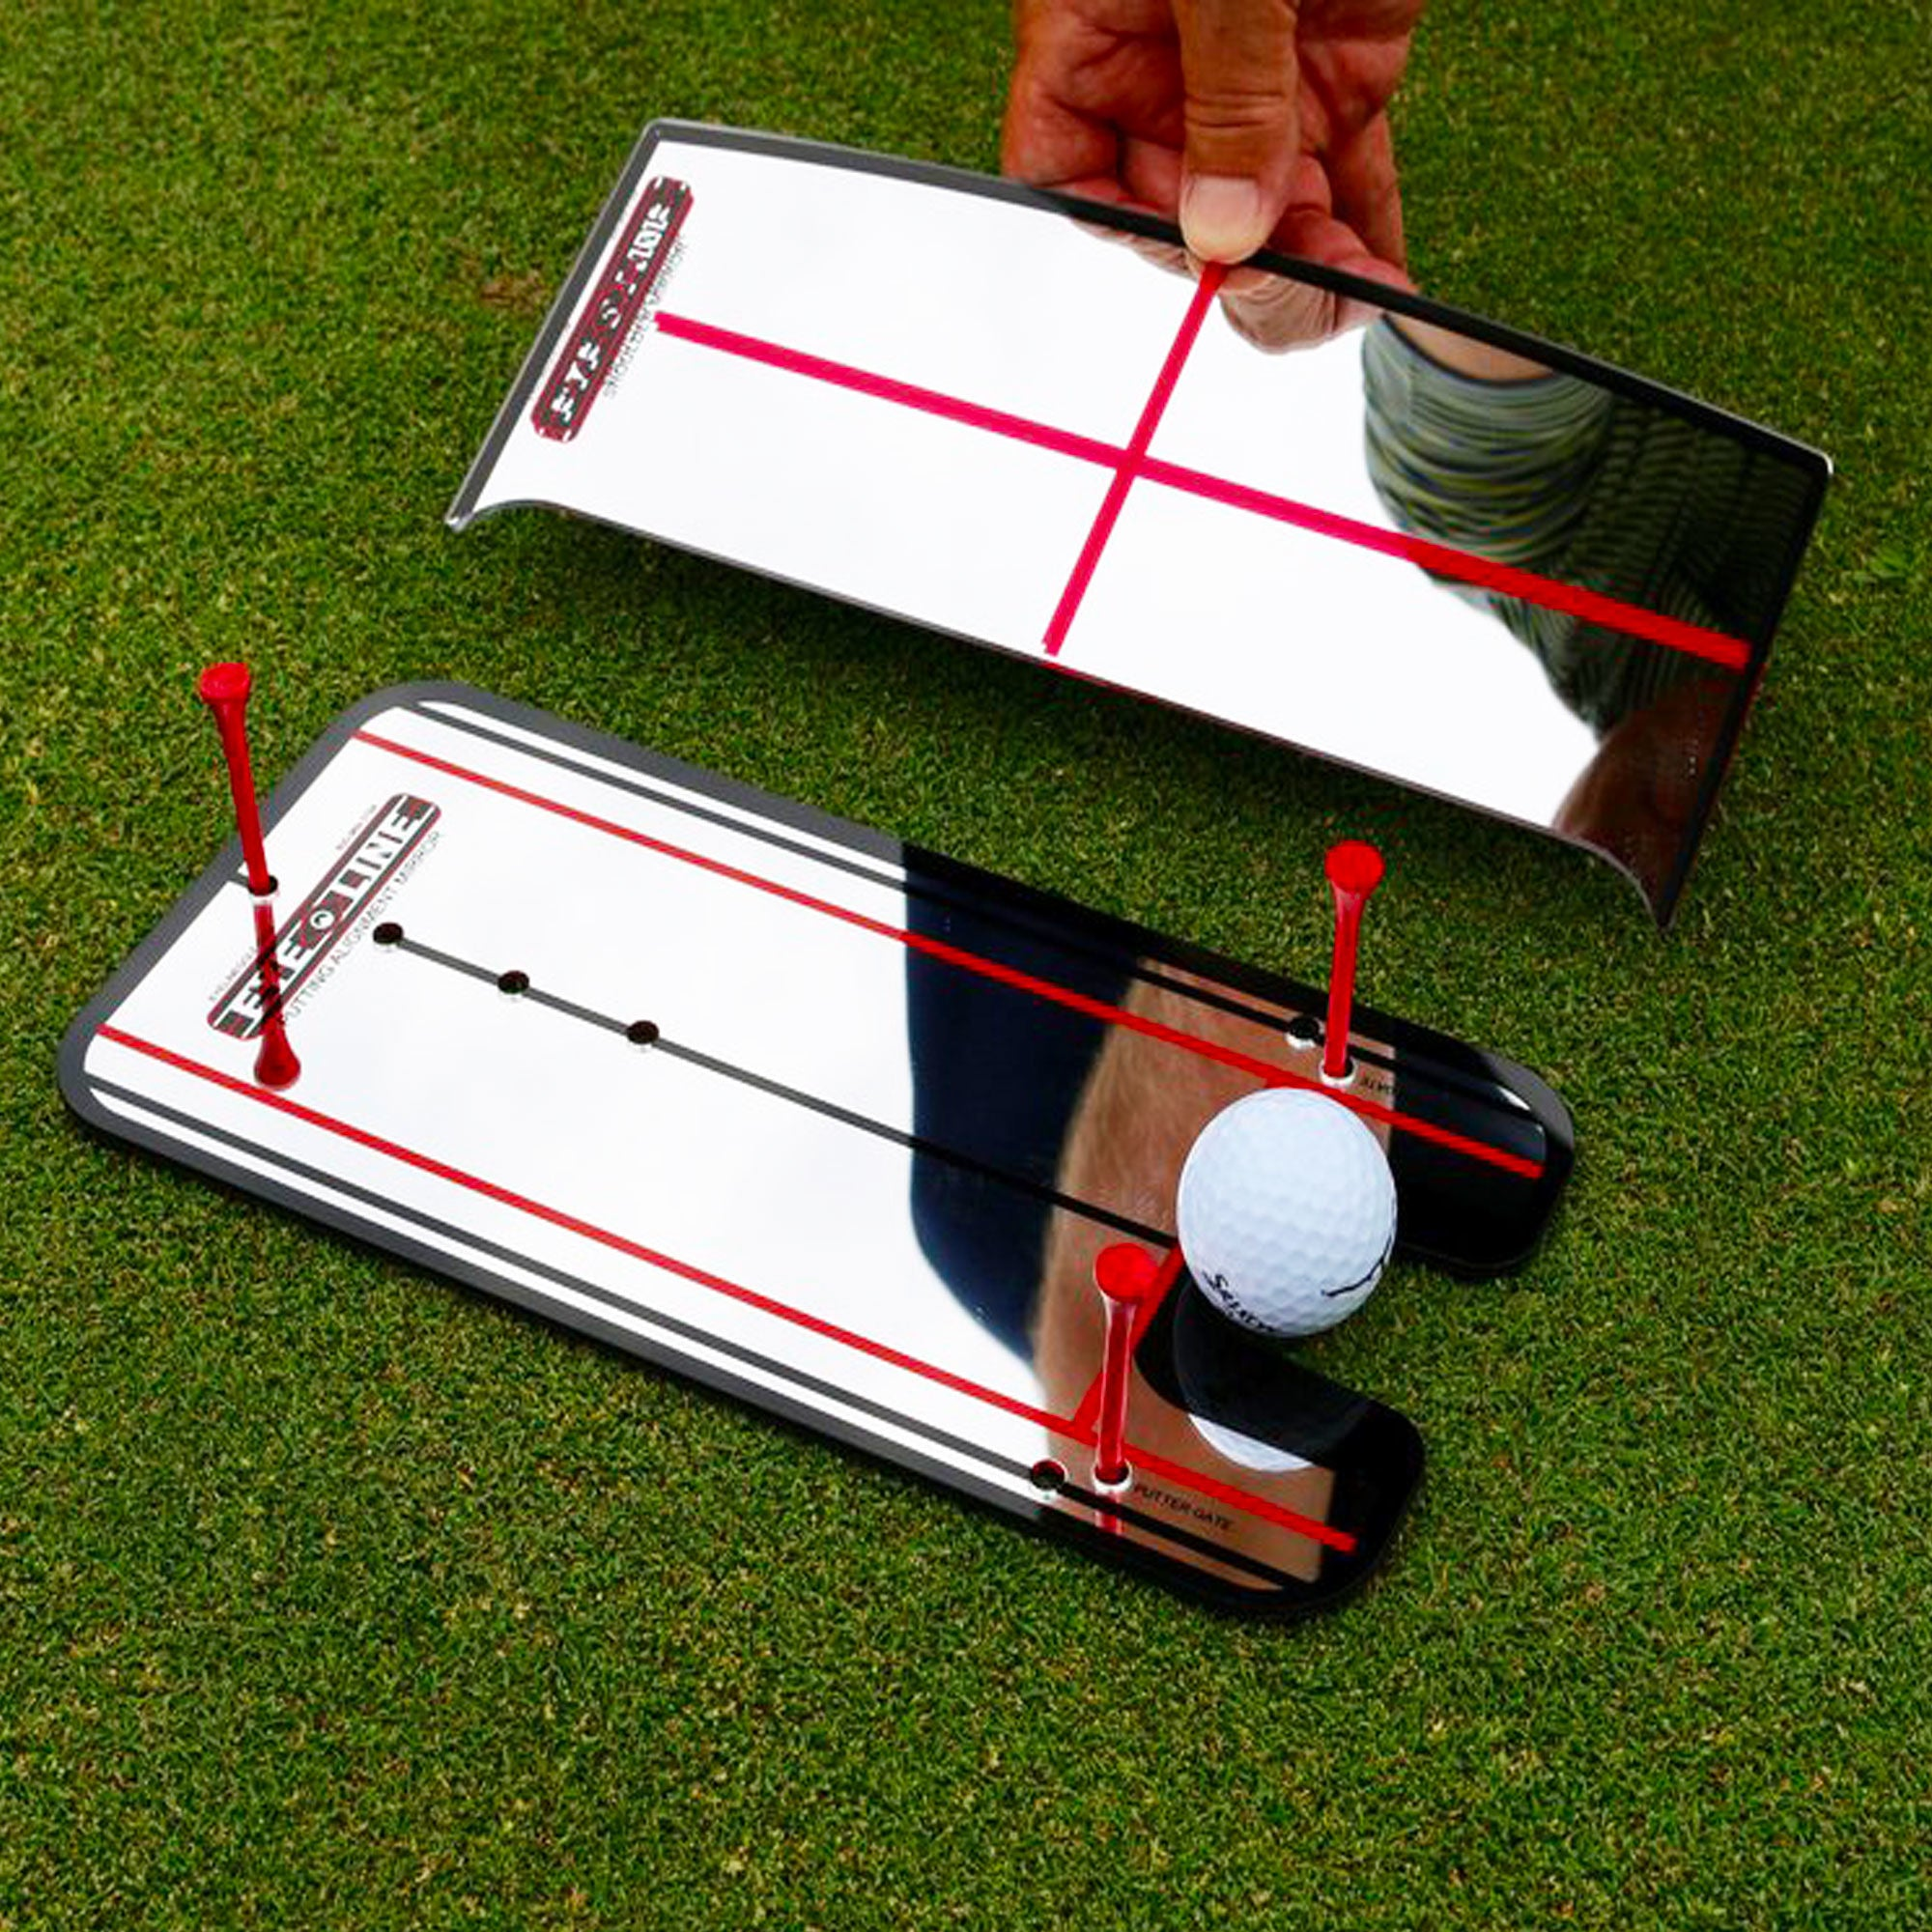 Eyeline Golf - Shoulder Mirror - Putterfingers.com